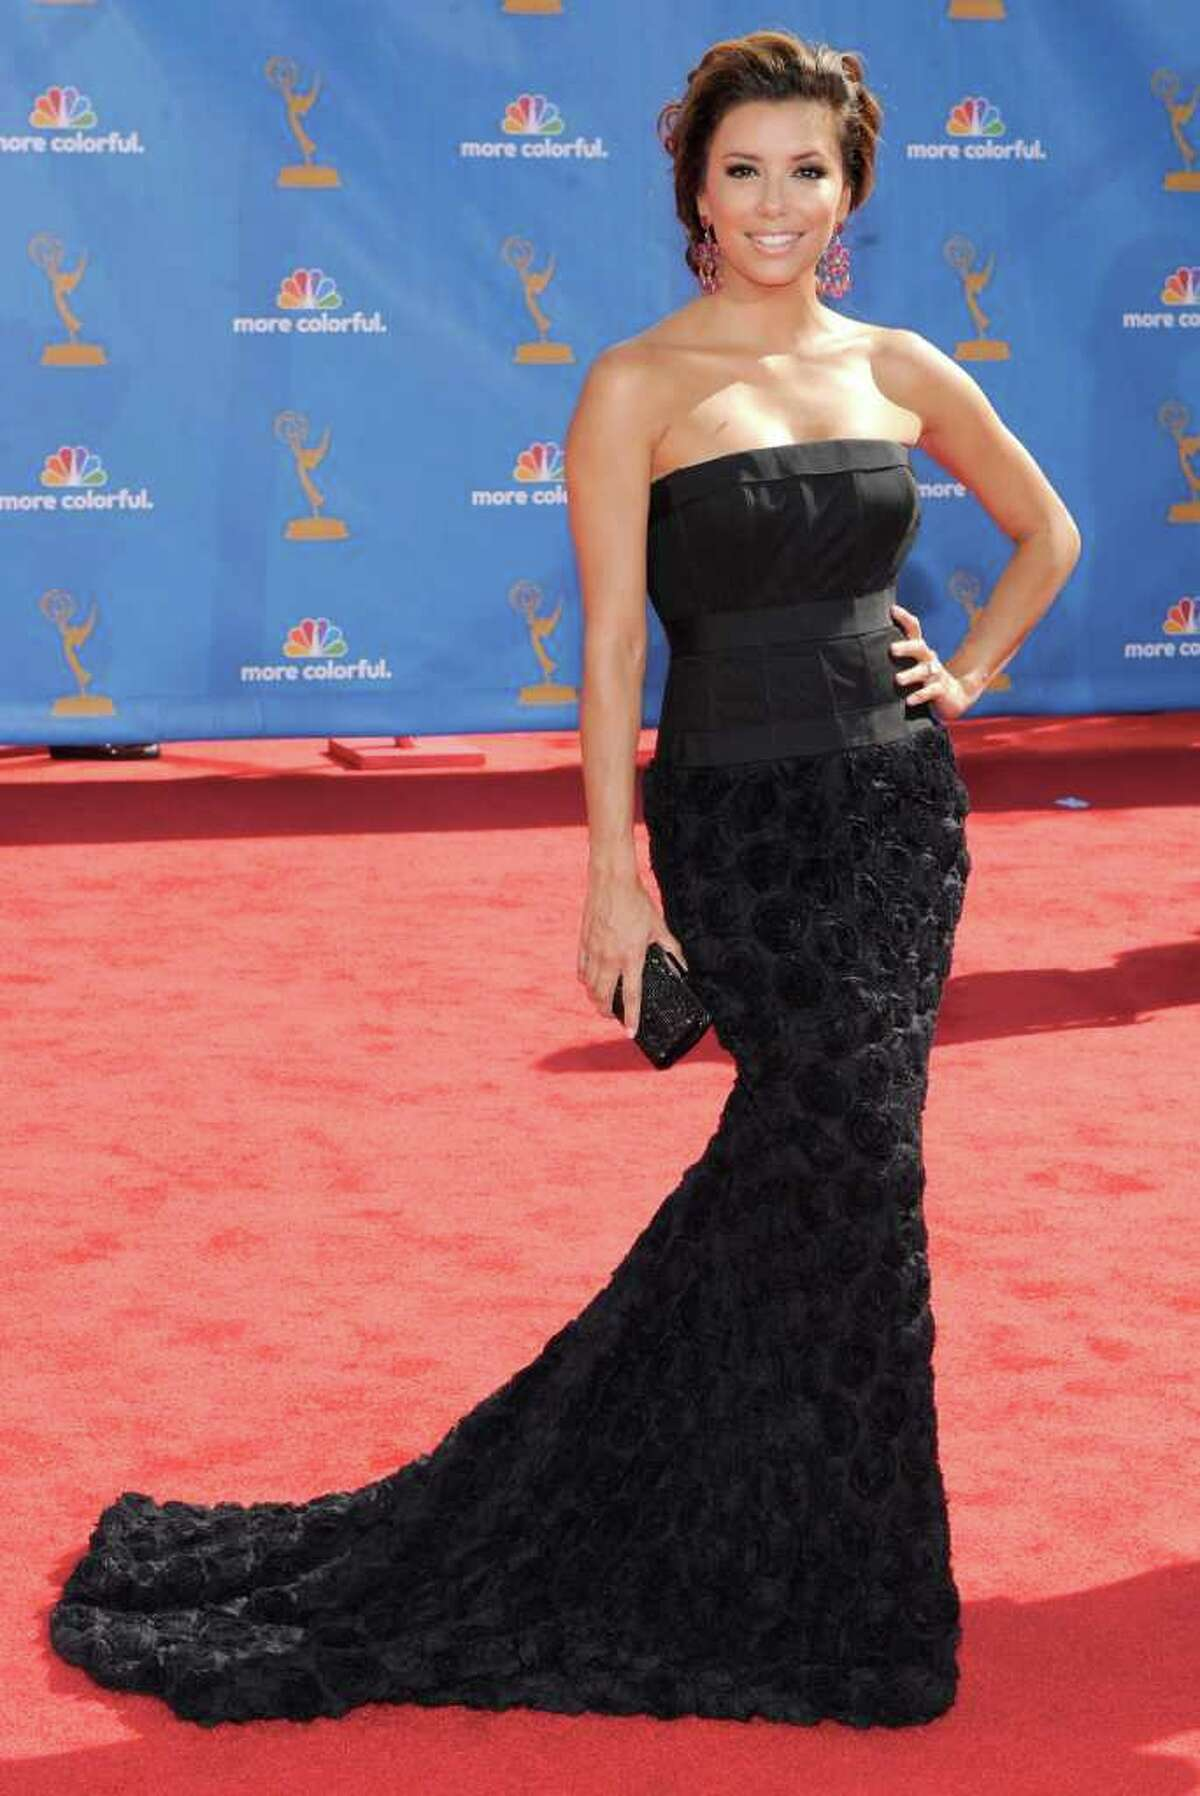 Actress Eva Longoria Parker attends the 62nd Primetime Emmy Awards Sunday, Aug. 29, 2010, in Los Angeles. (AP Photo/Chris Pizzello)